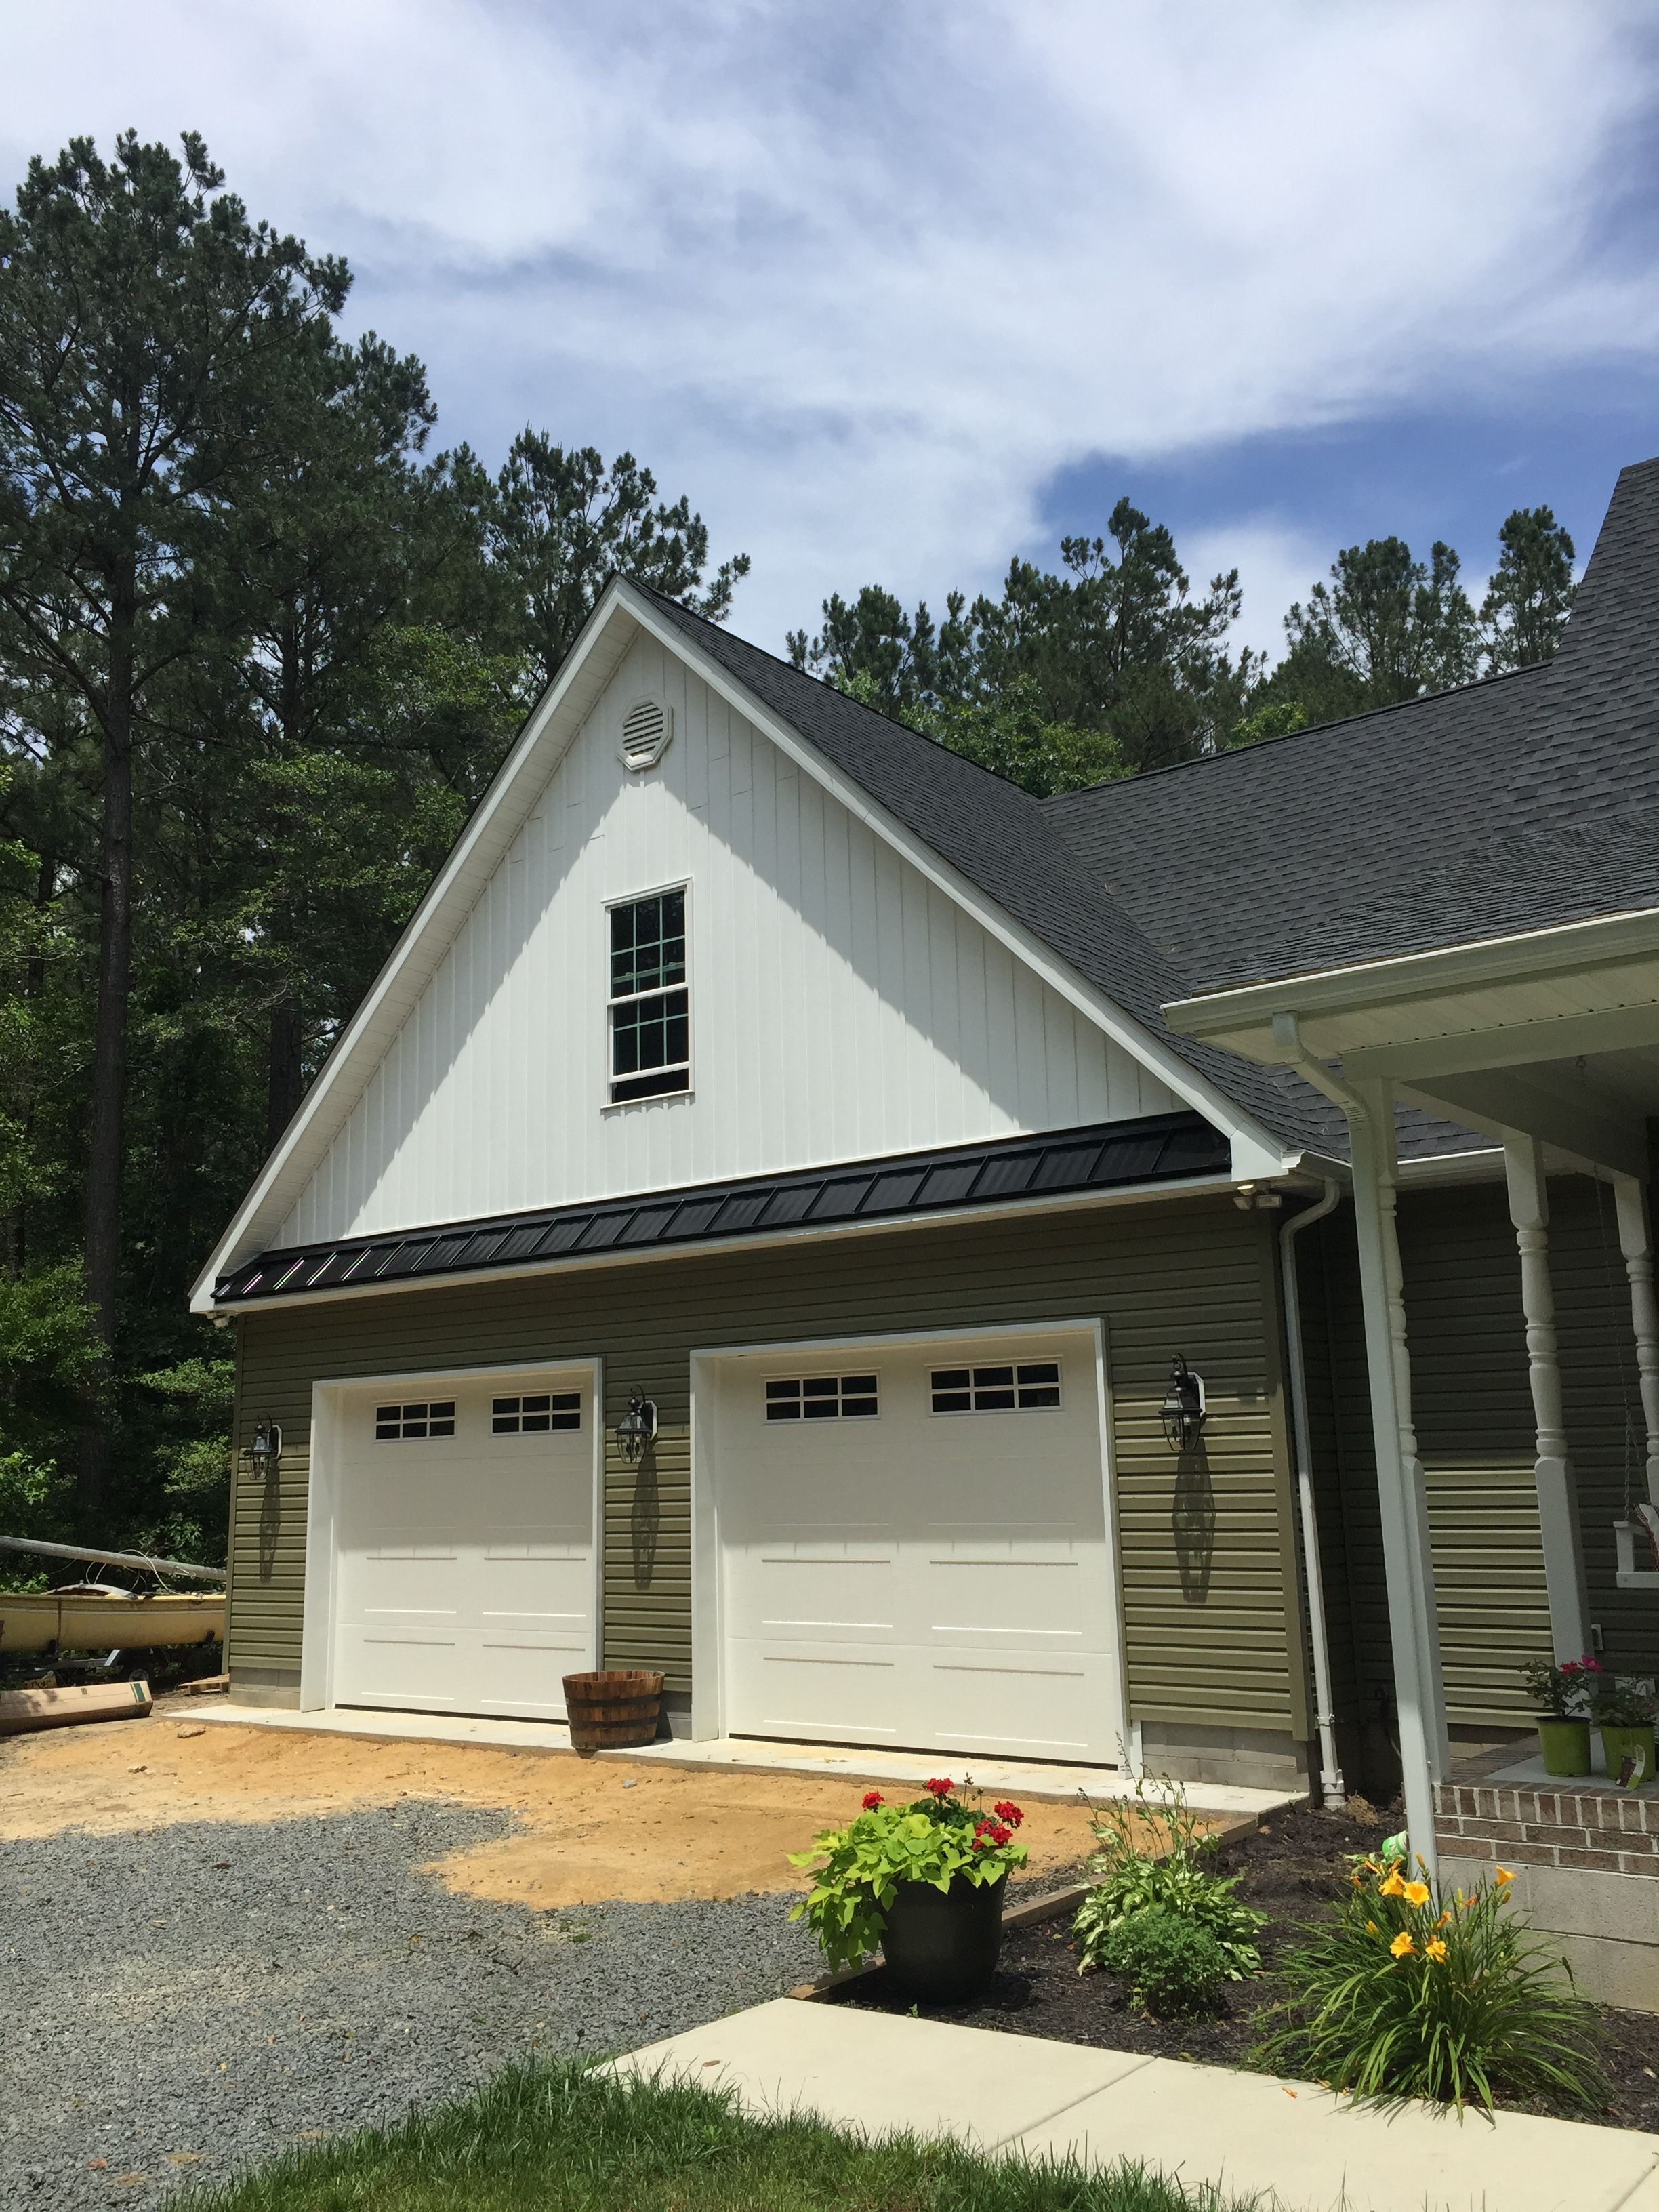 A 30x30 Garage Addition With A Bonus Room Above Accessed By The